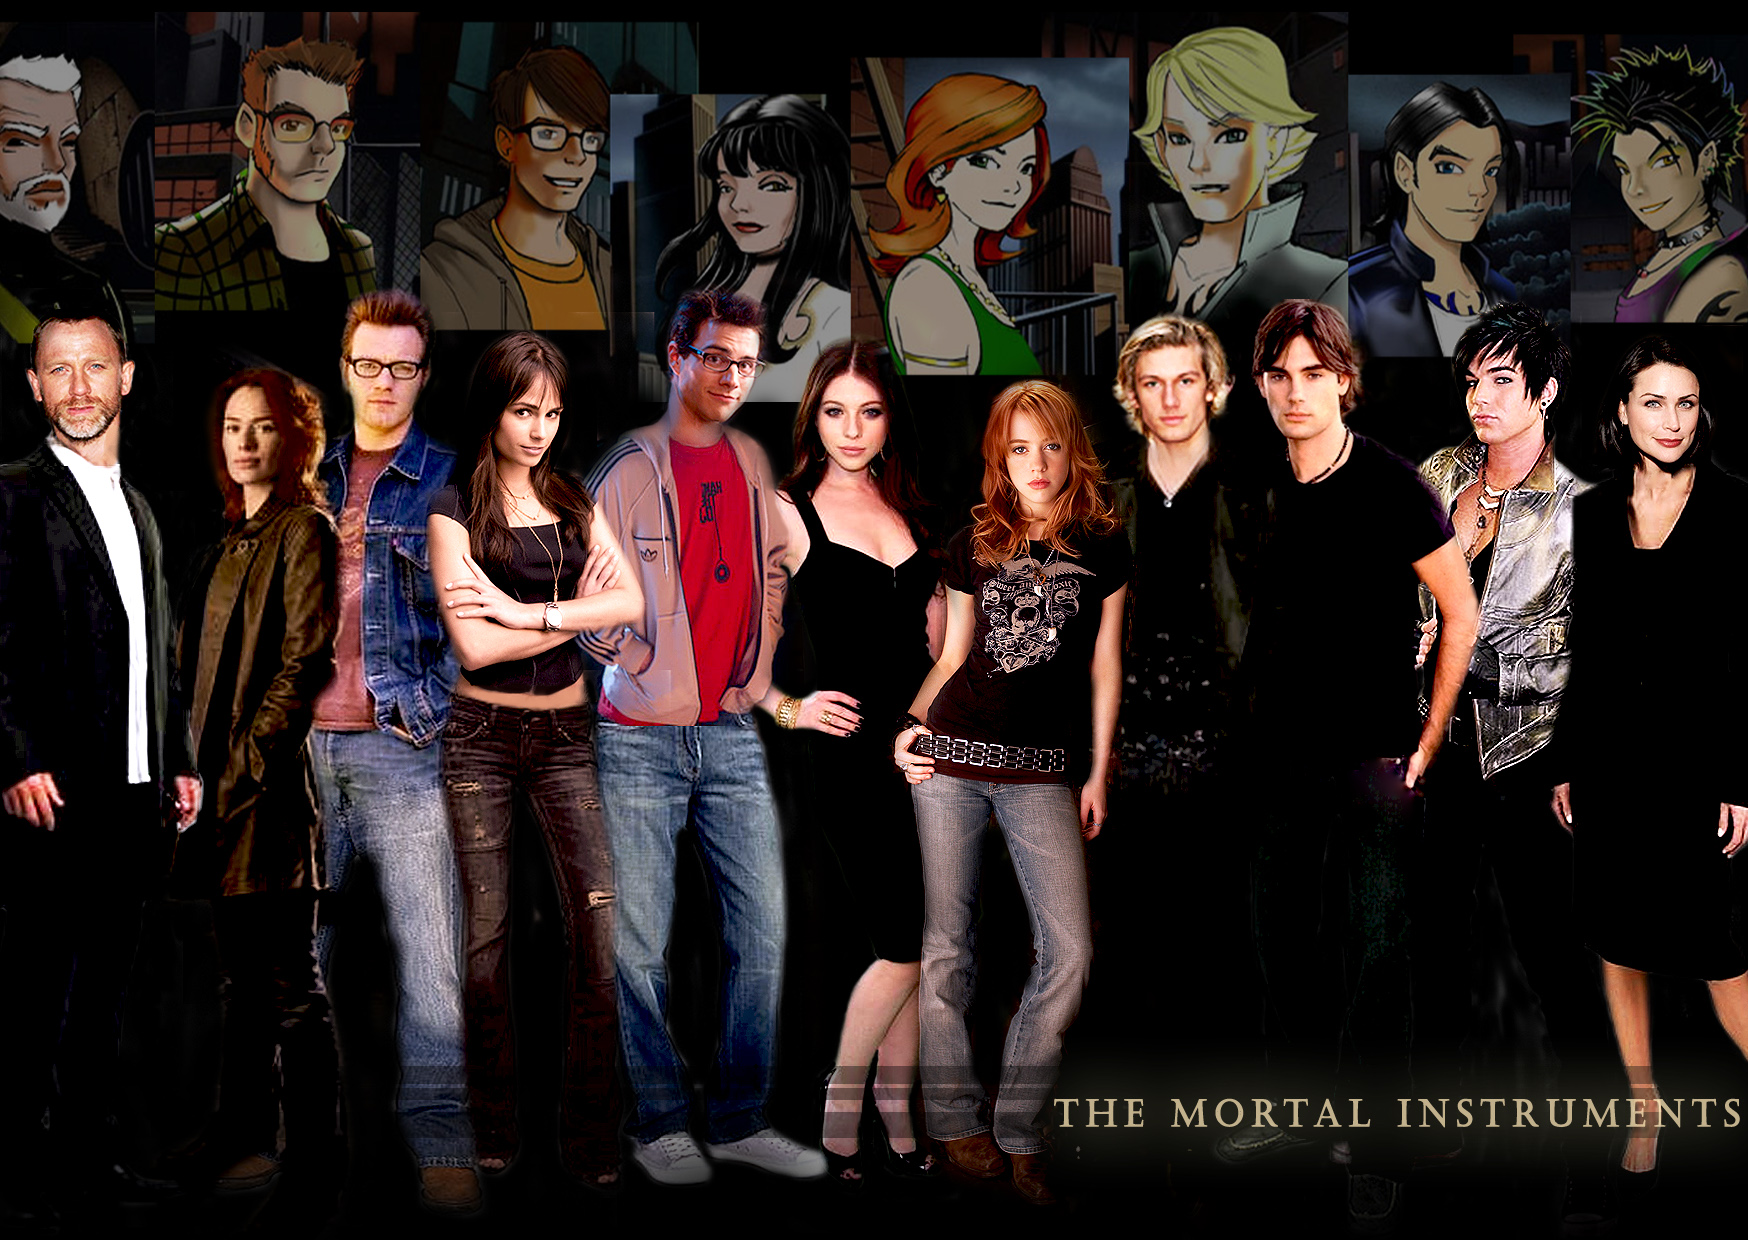 Mortal Instruments The mortal Instruments Cast by blueshour